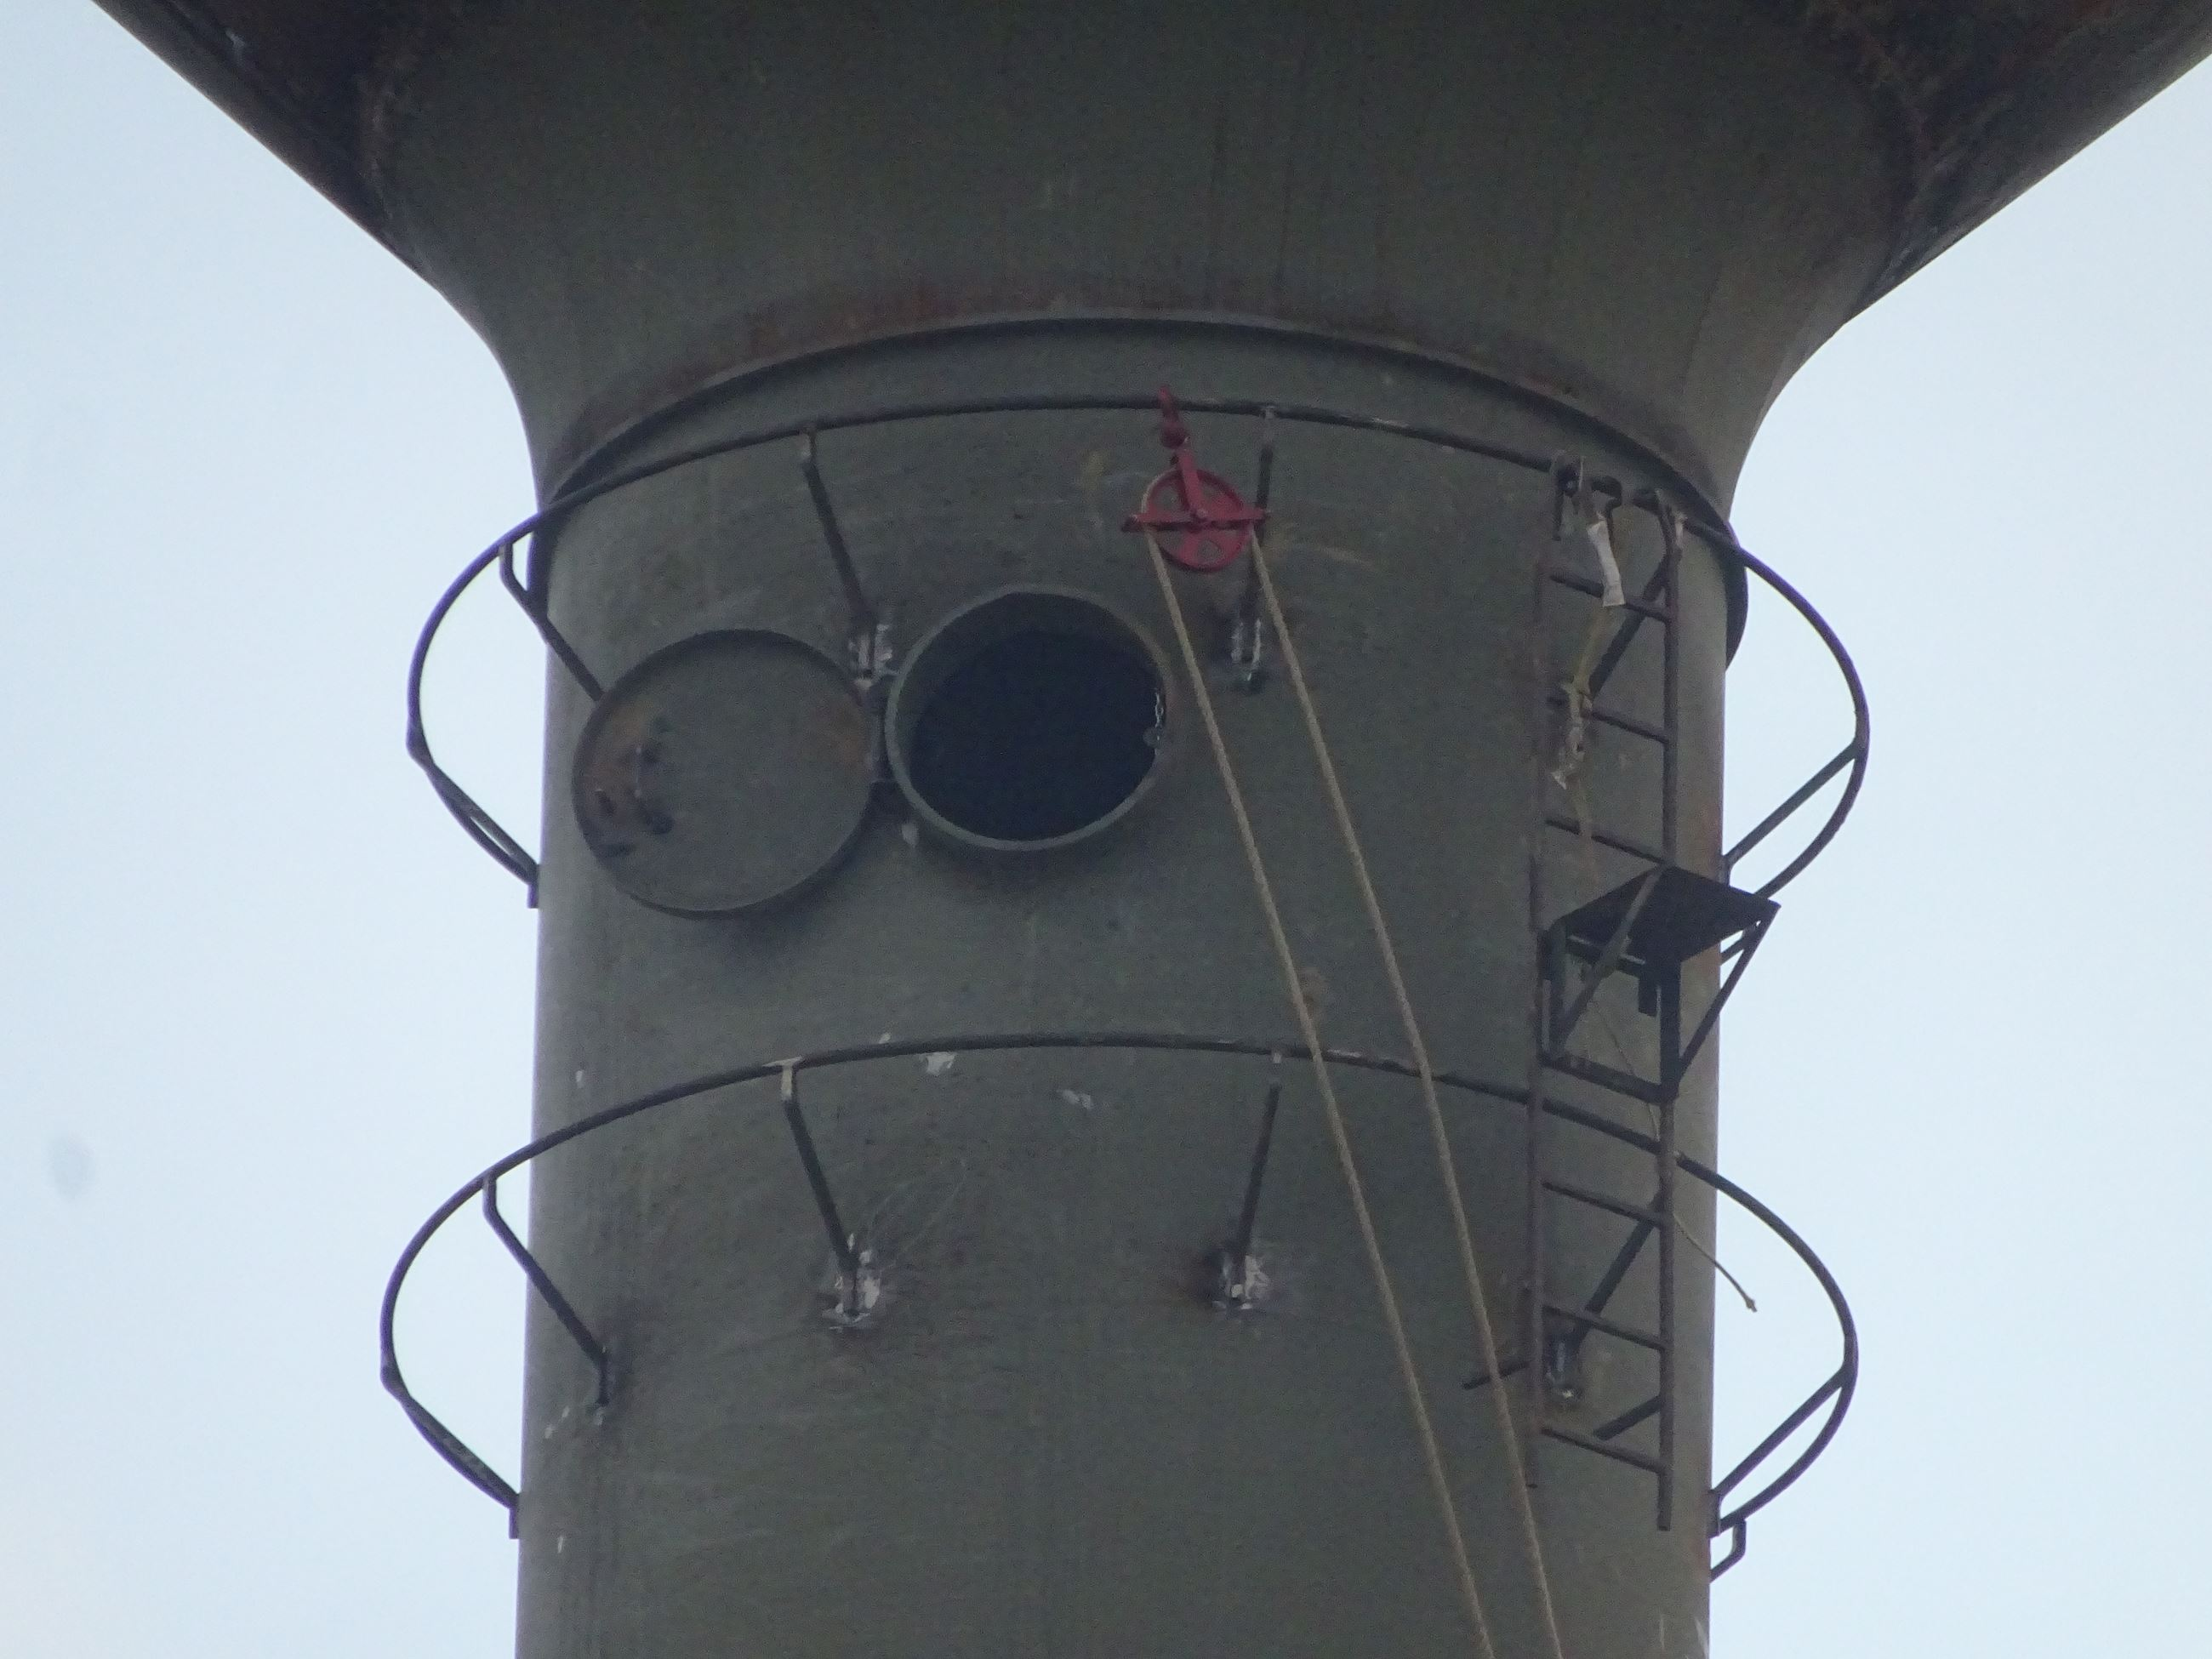 Close up of pulley on water tower